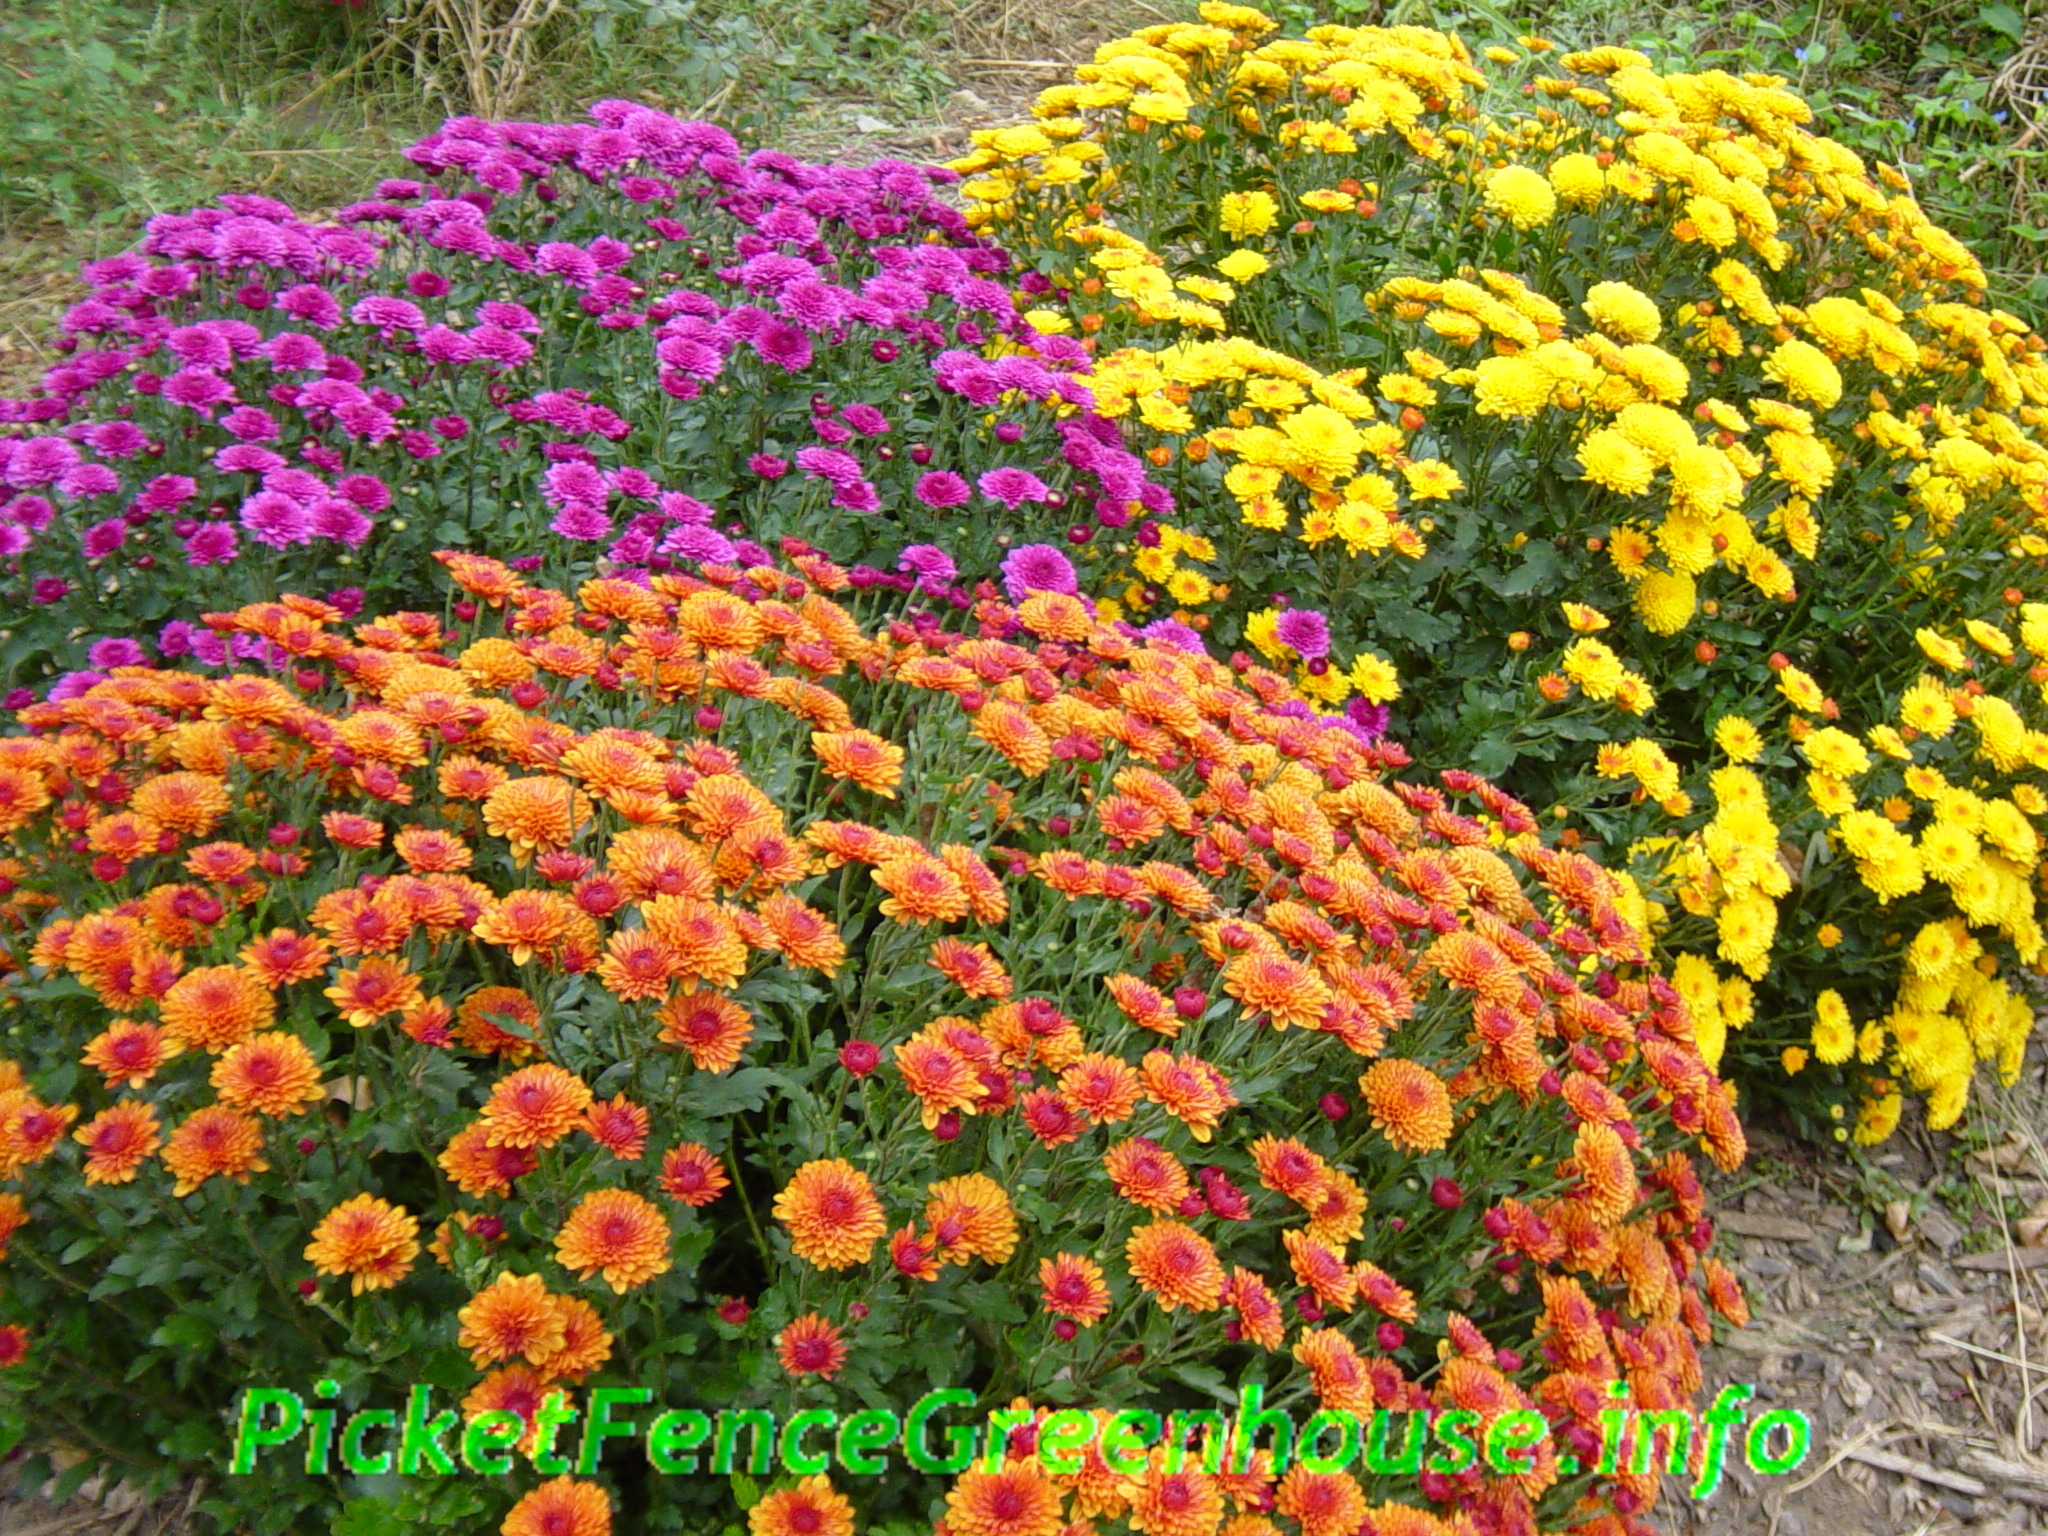 How to Grow Mums Planting Fertilizing Pinching Transplanting Picket Fence